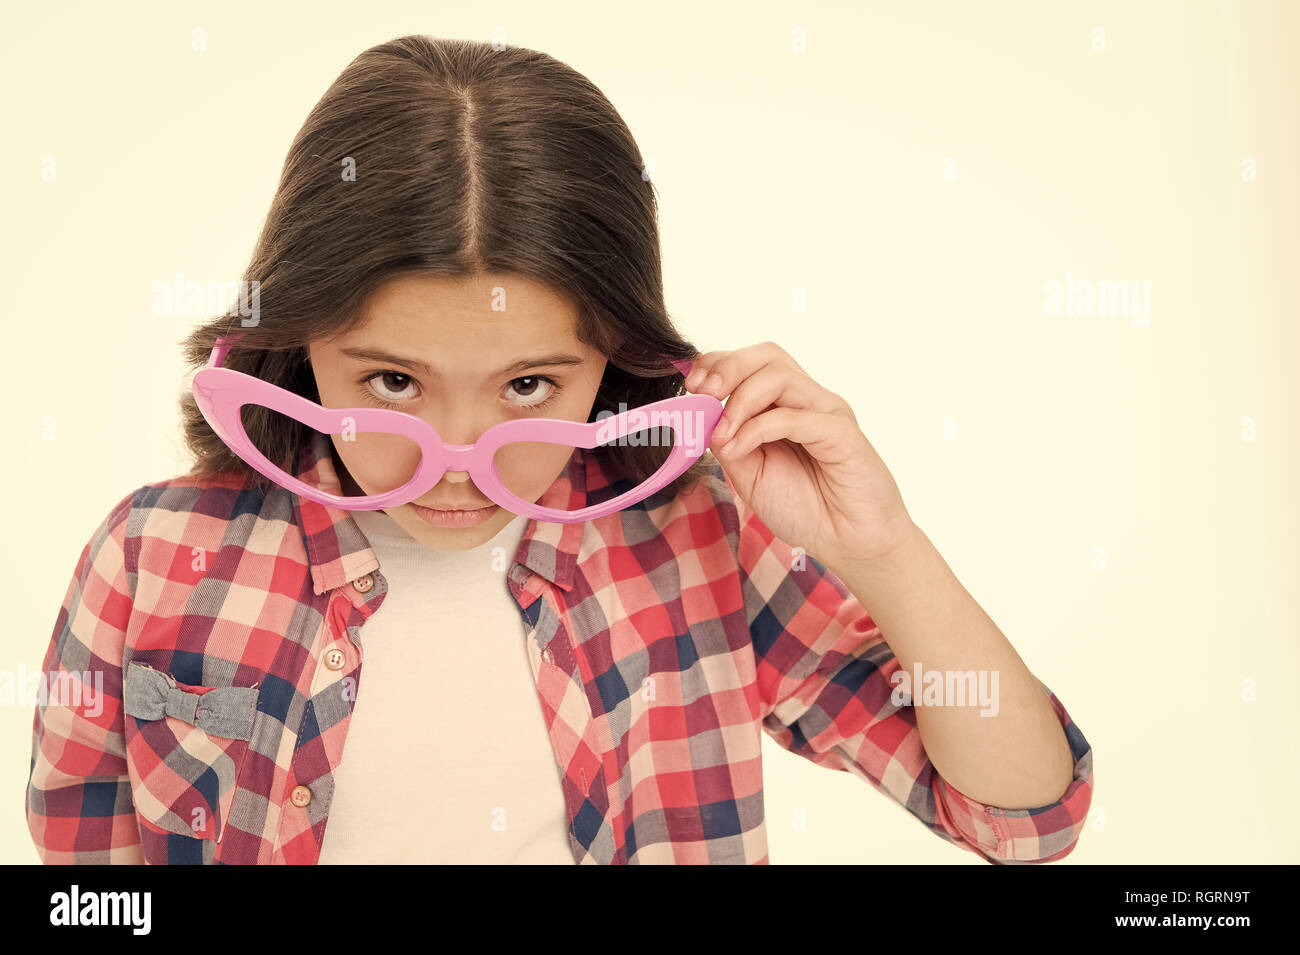 1c00e15a919 Big Heart Stock Photos   Big Heart Stock Images - Alamy